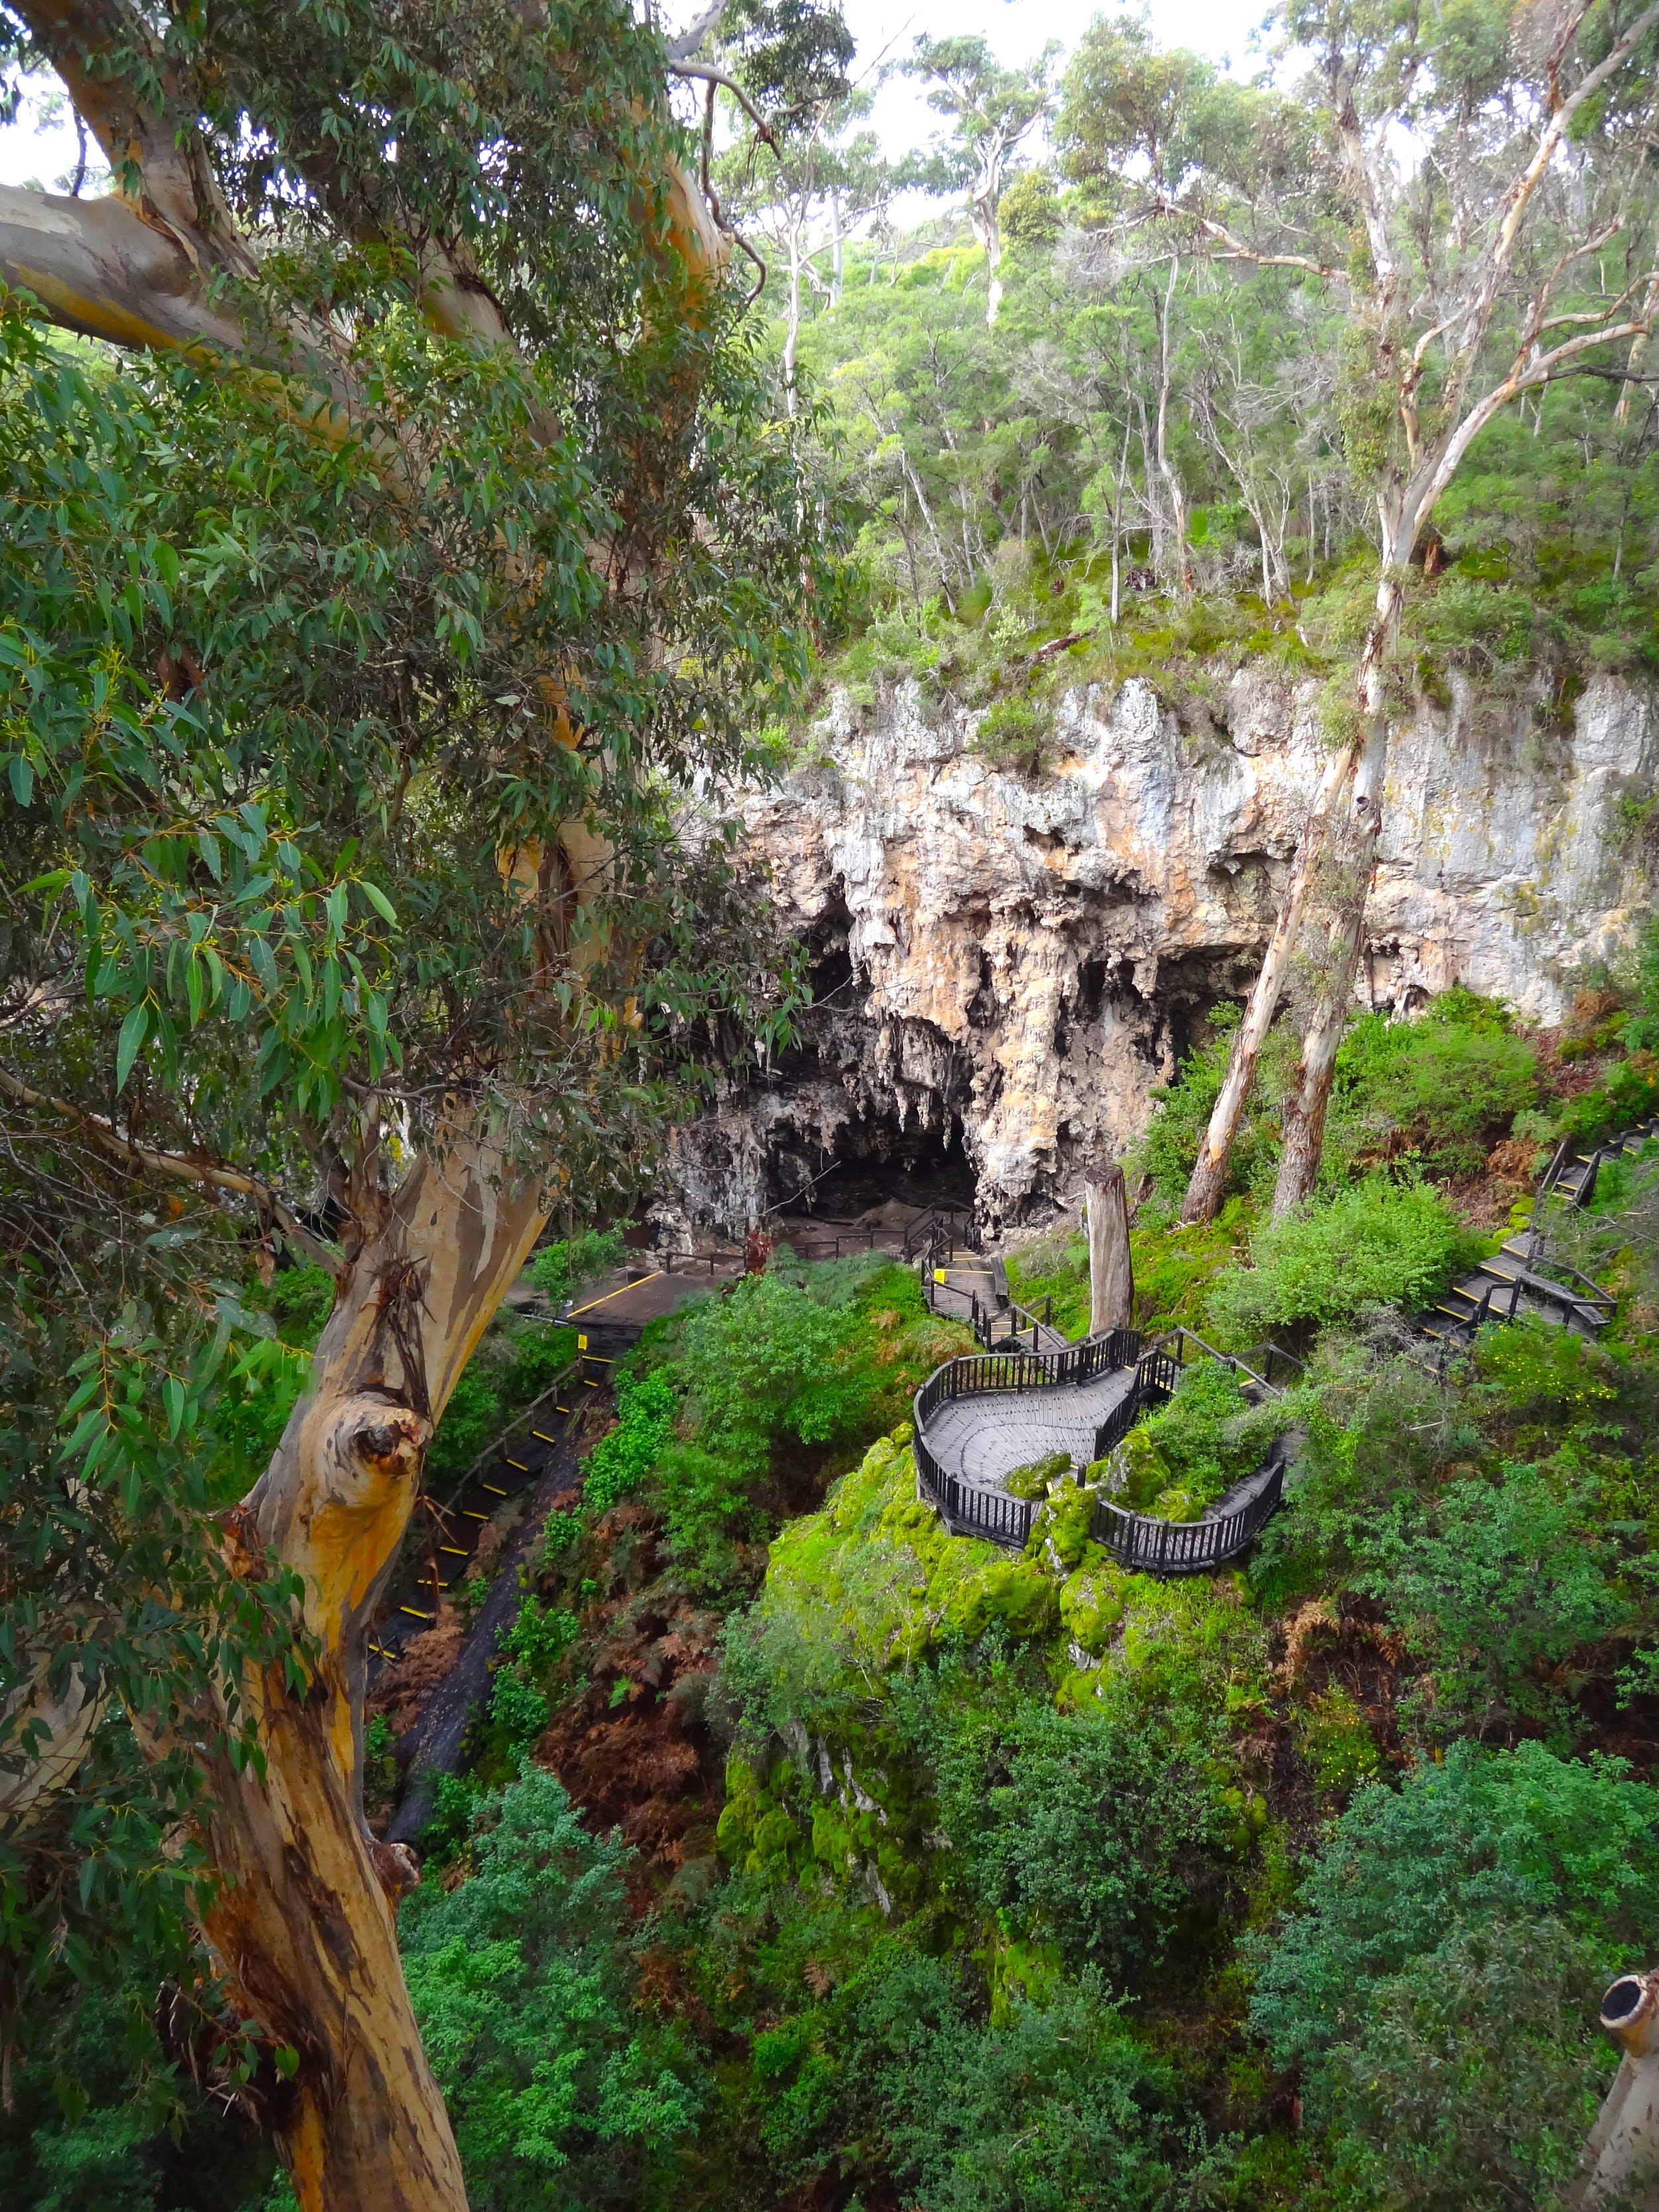 From dense forest with the impressive doline forming the entrance of Jewel Cave